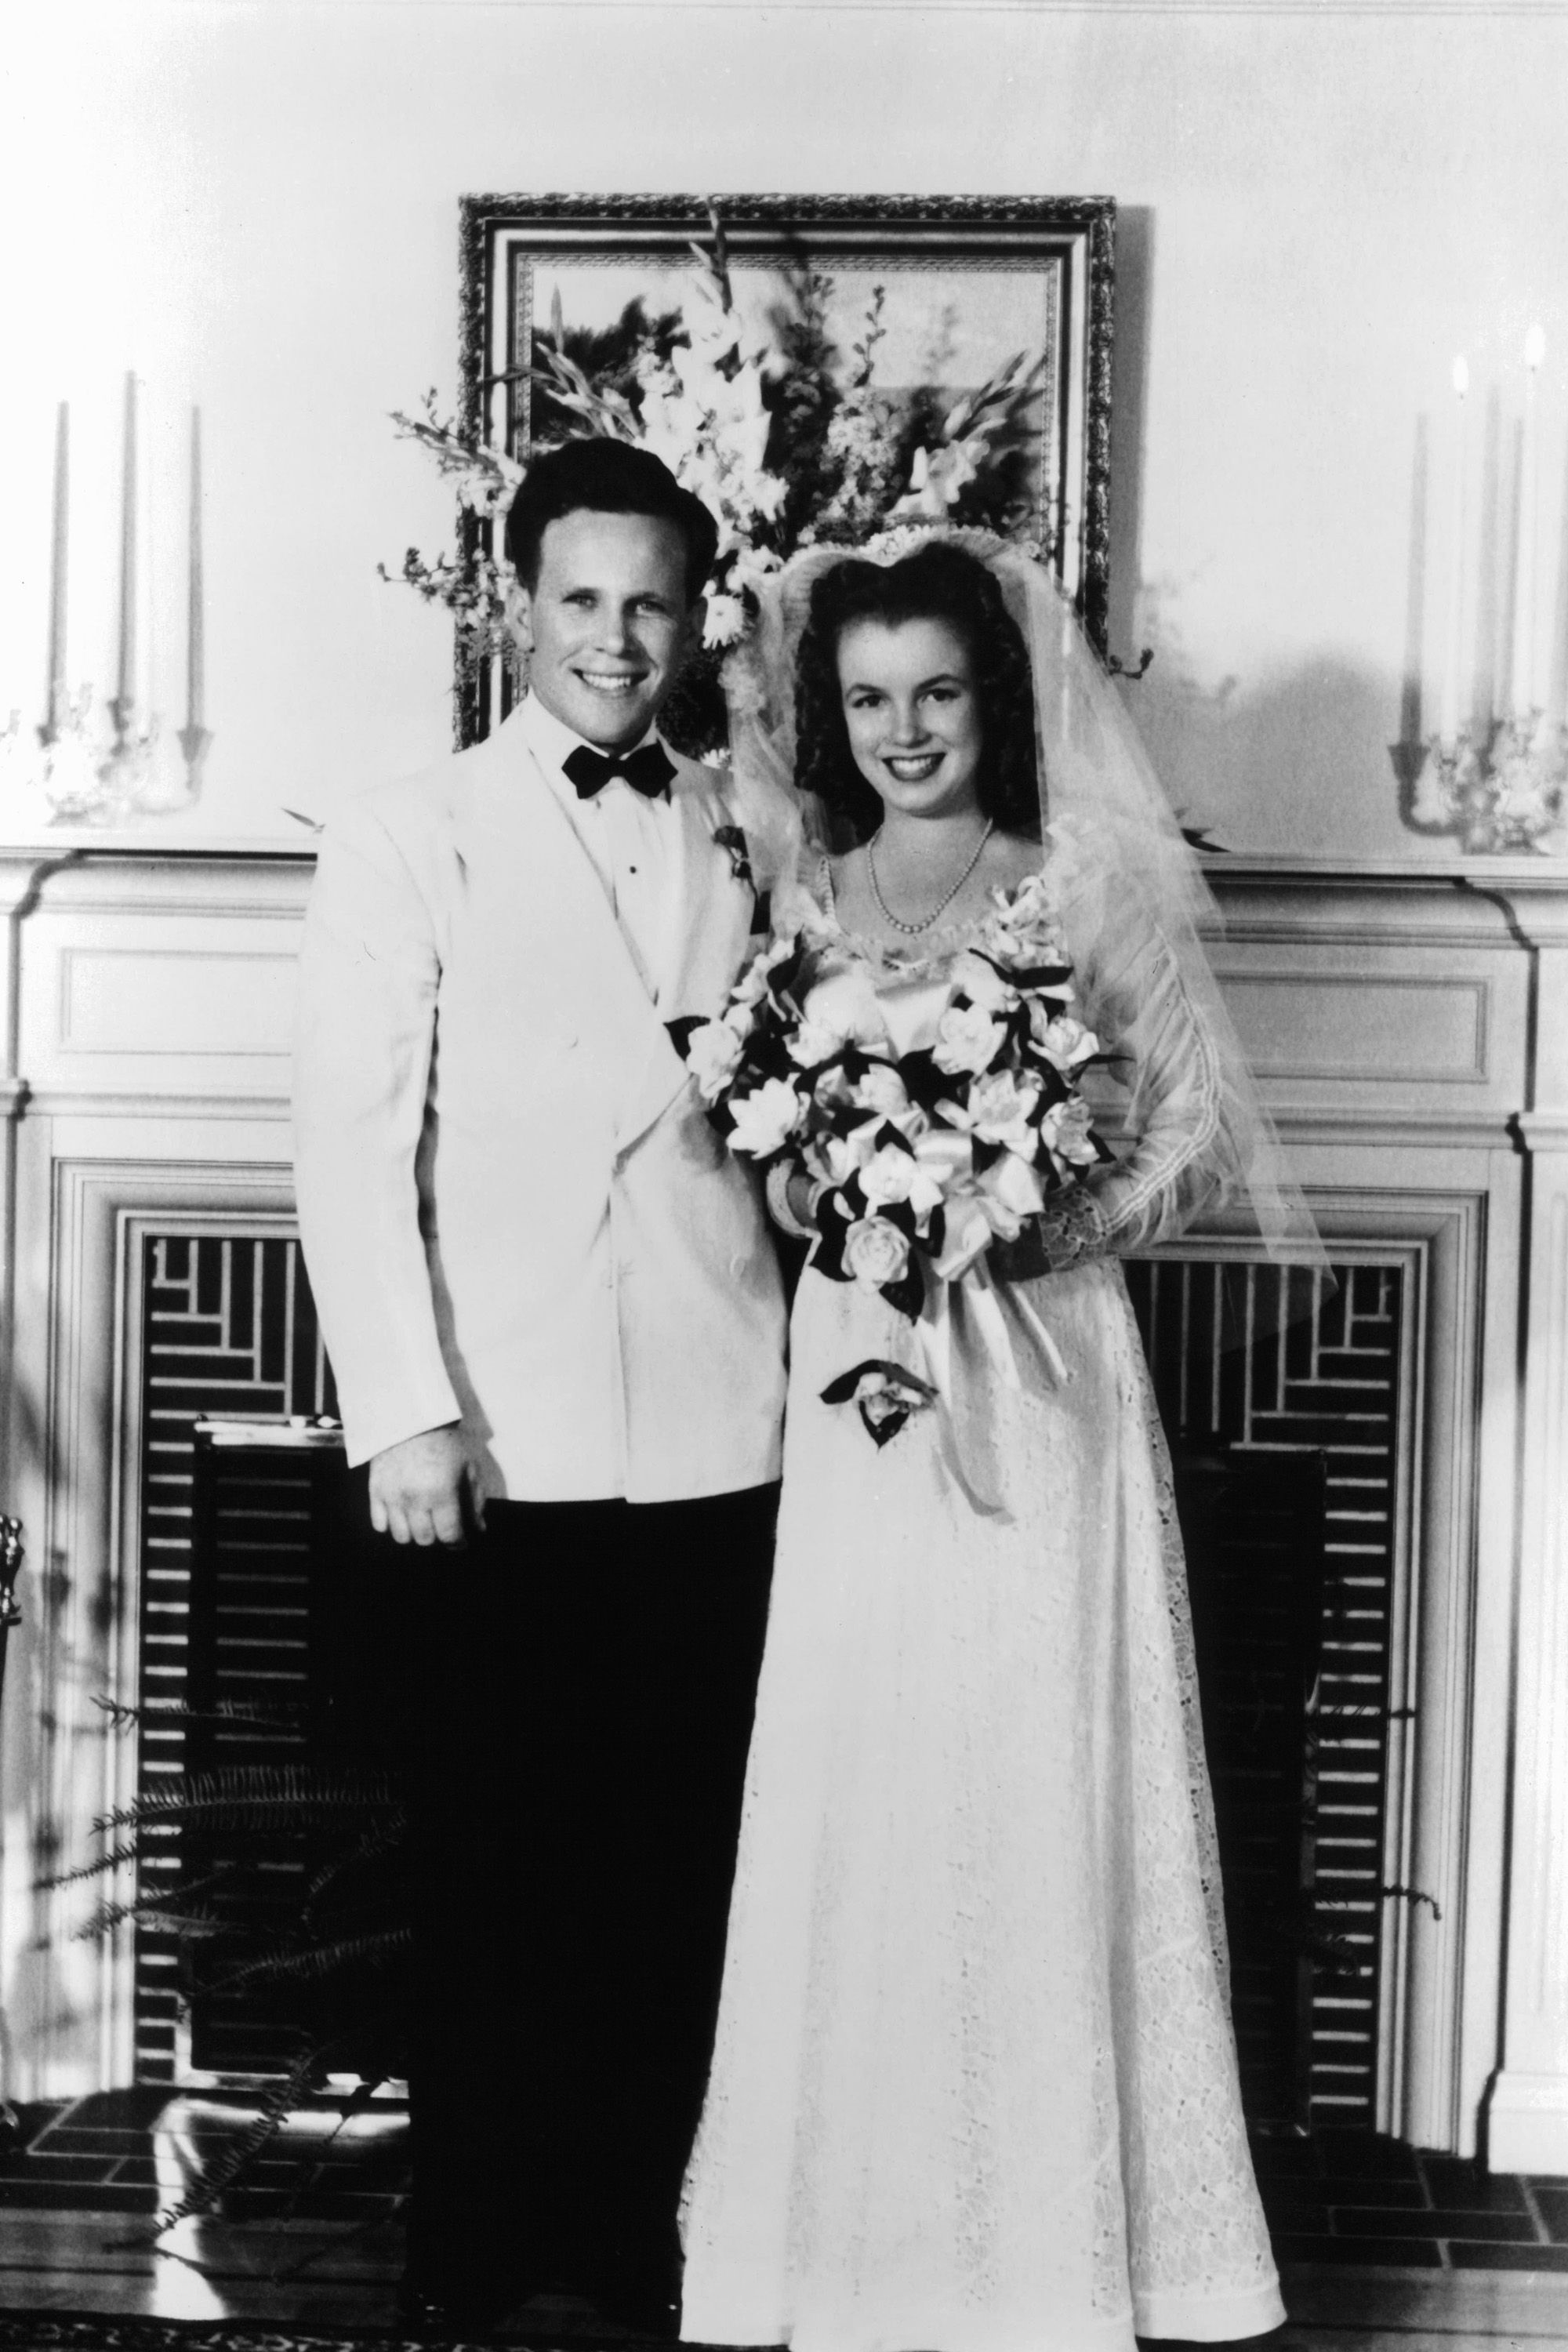 <p>Monroe's first marriage, to high school sweetheart James Dougherty, when she was 16. </p>